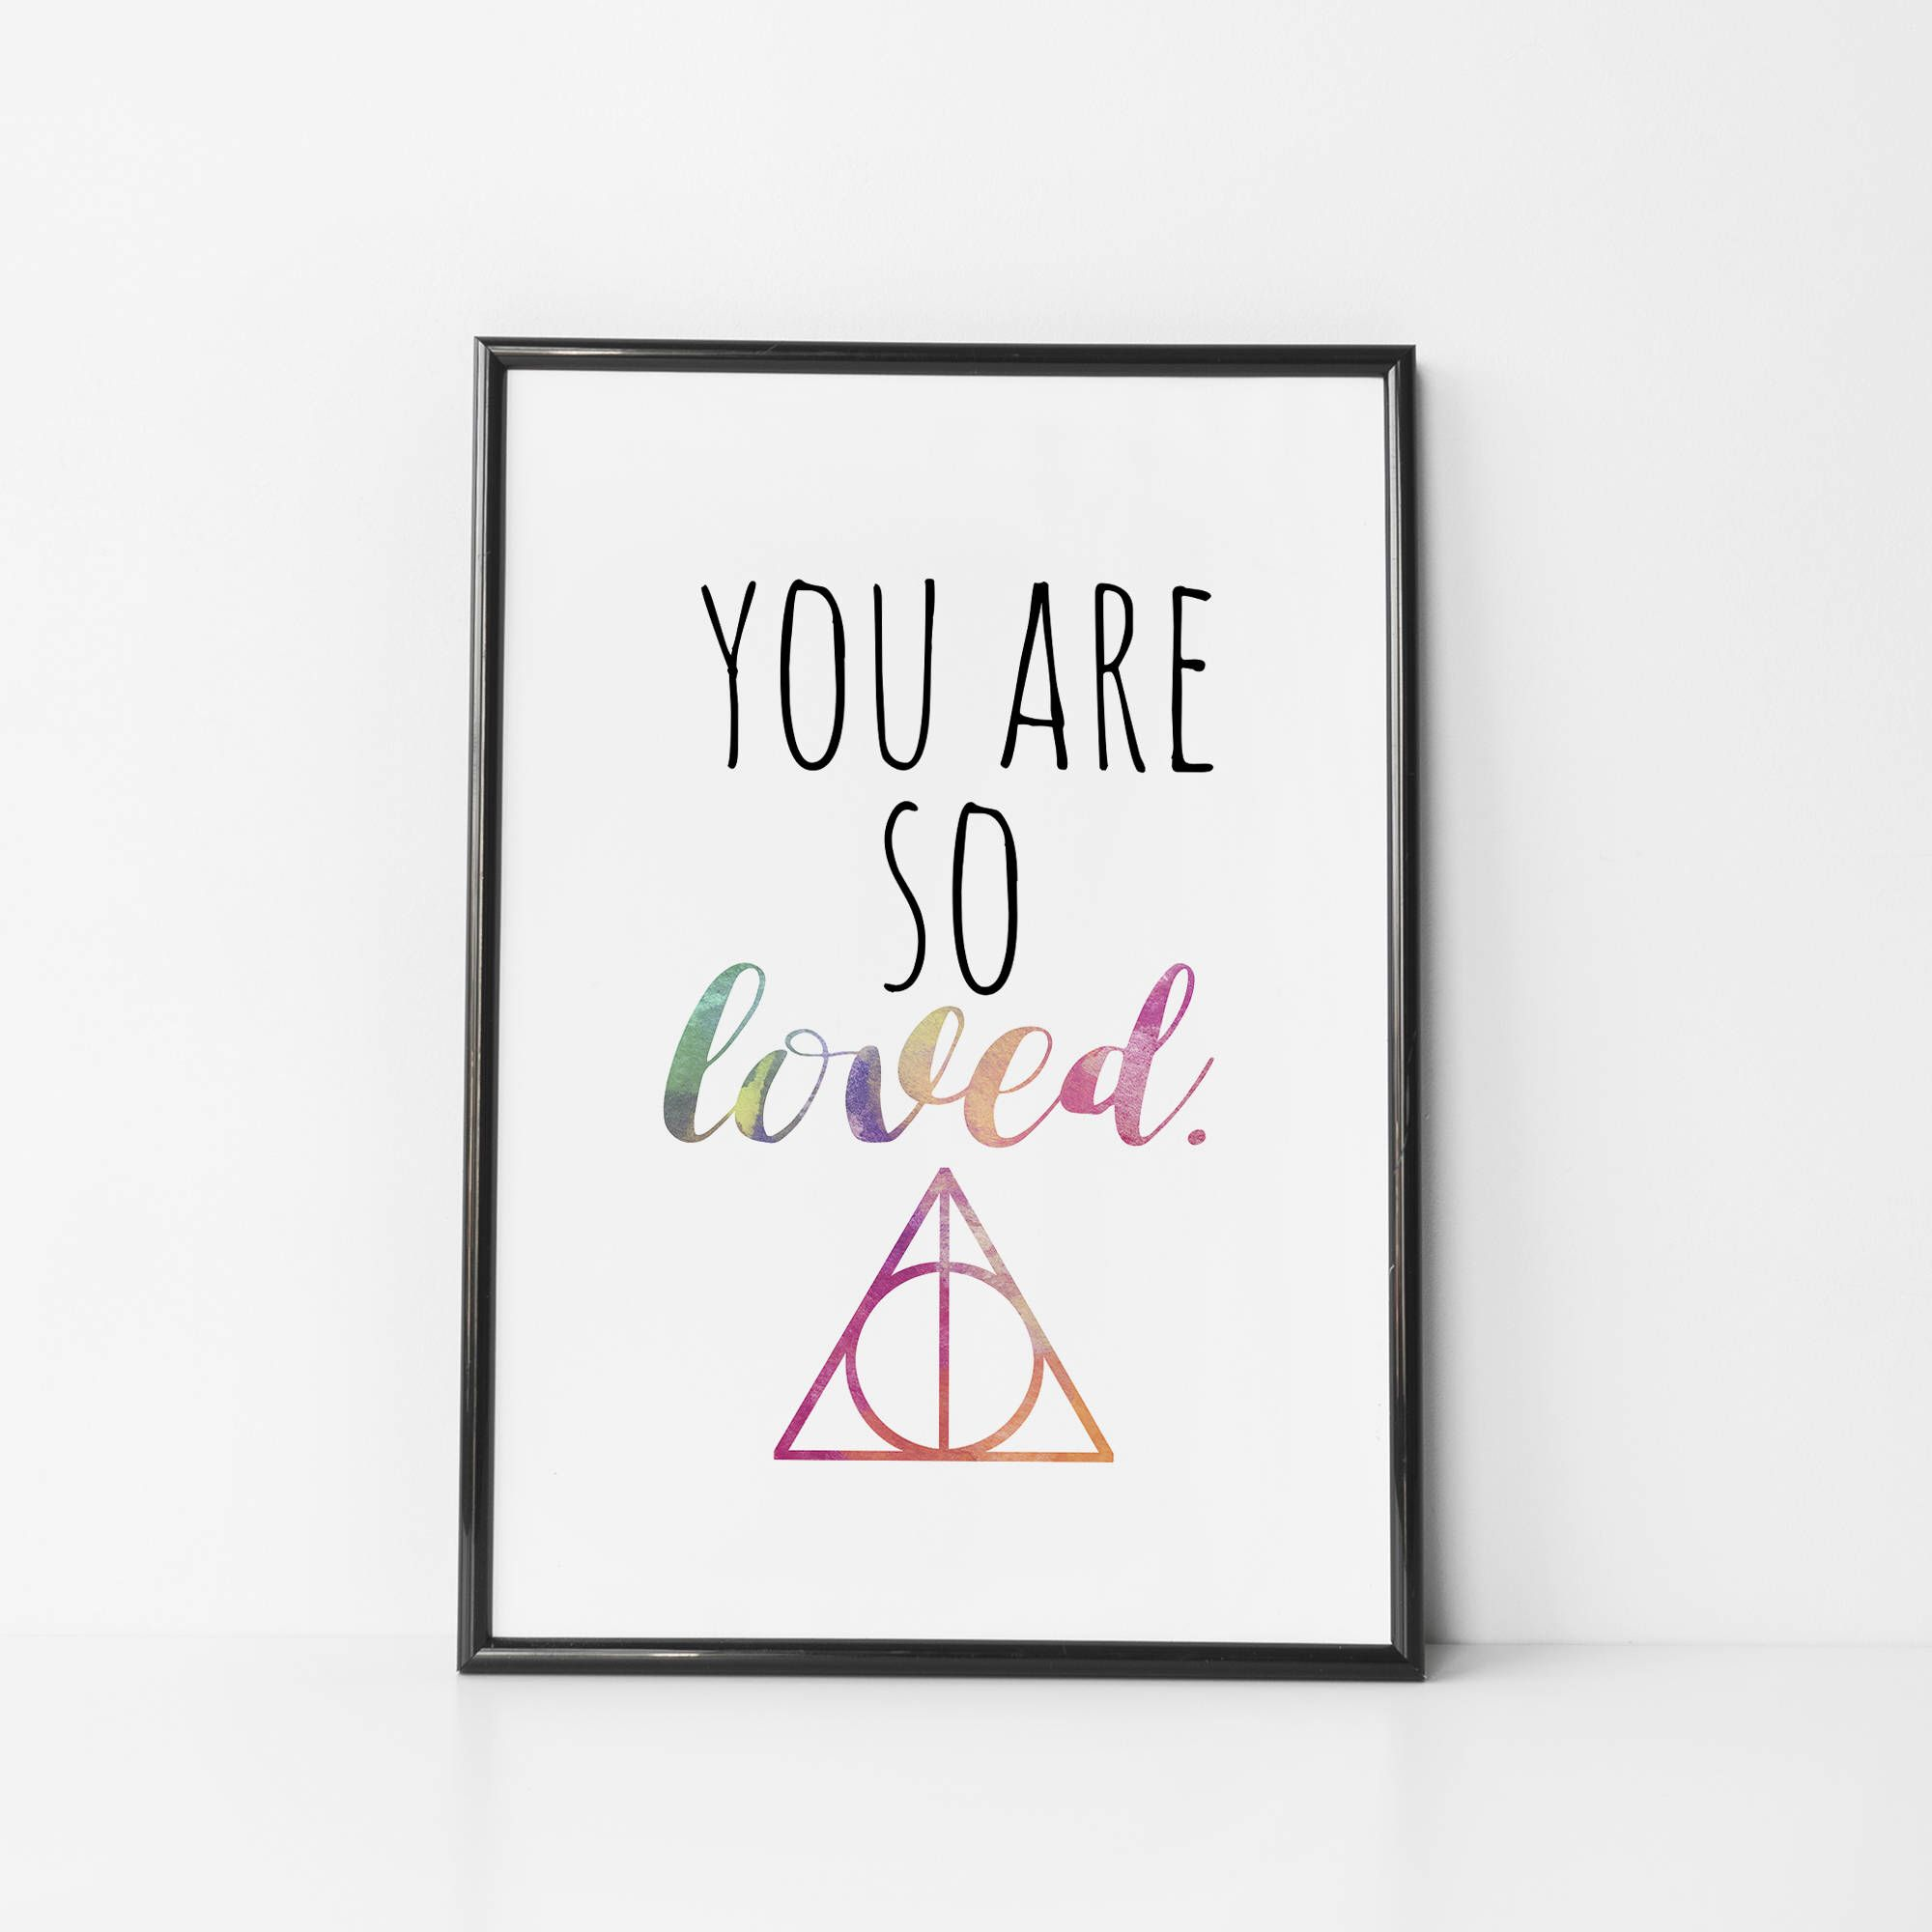 570bcd2356c Harry Potter Nursery Print - You Are so Loved - Nursery Quote - Harry Potter  Baby